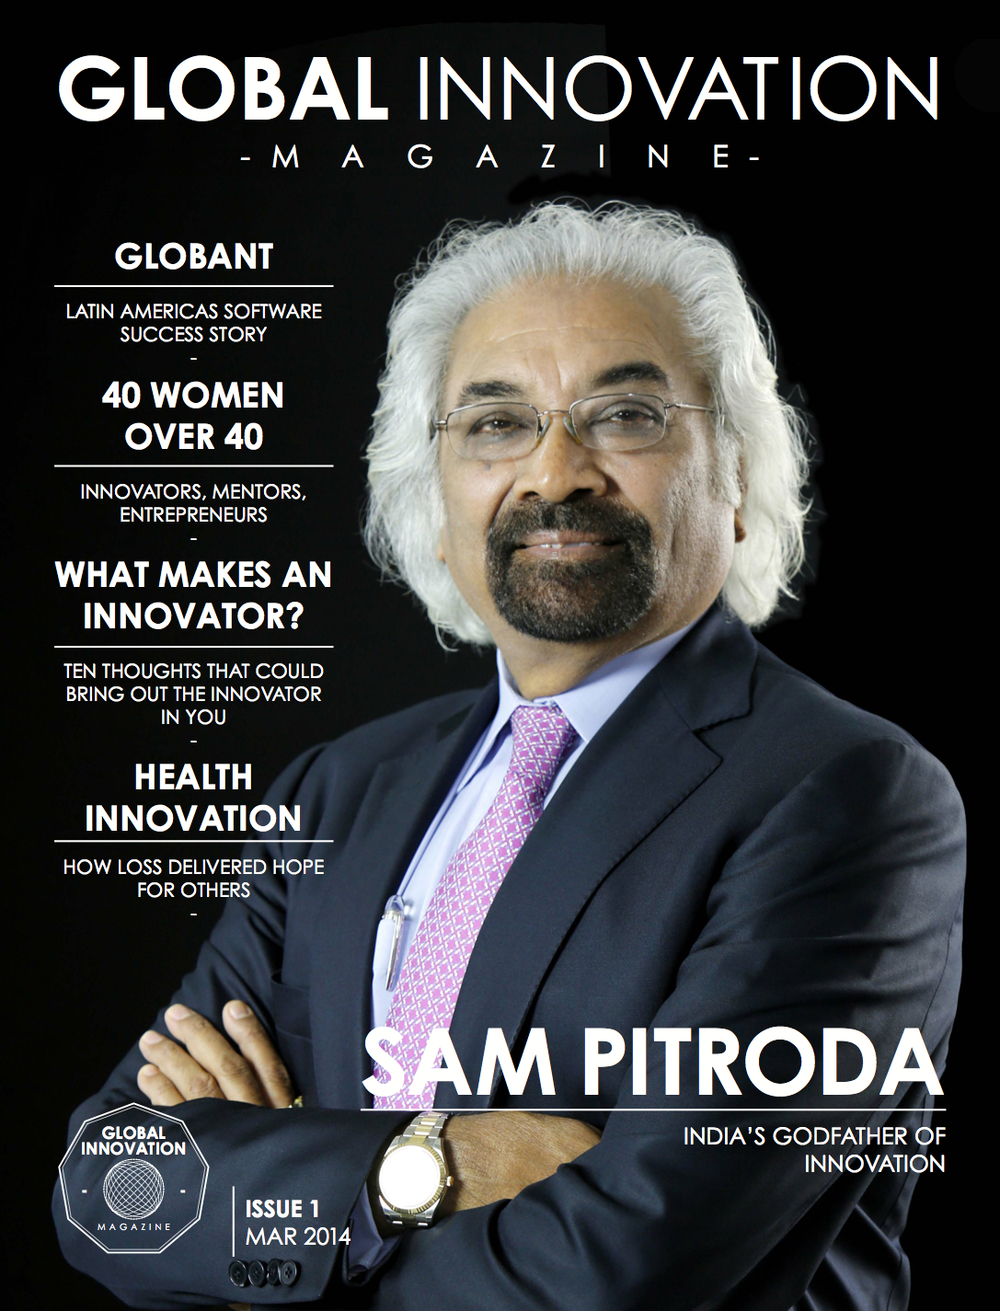 """Sam Pitroda: India's Godfather of Innovation,"" Global Innovation Magazine, 2014"